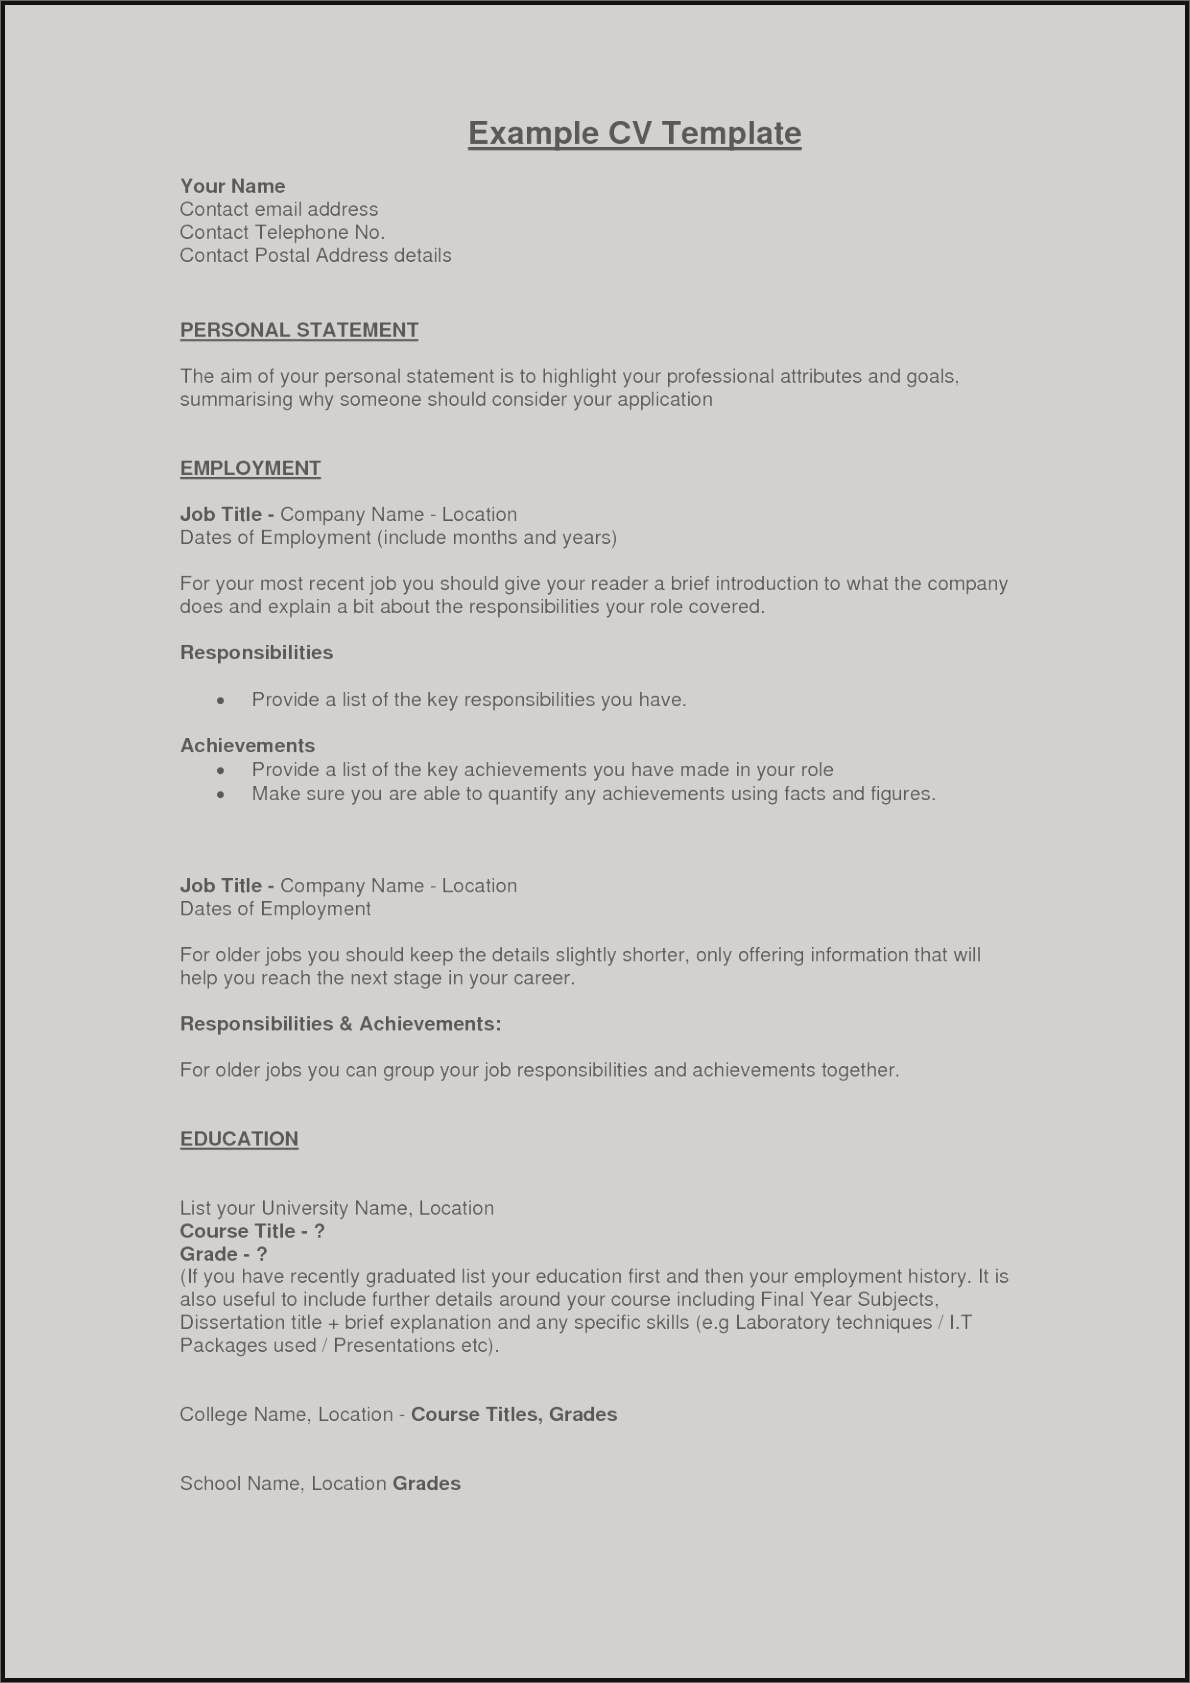 Job Title In Resume - Job Titles for Resume Best Example Perfect Resume Fresh Examples